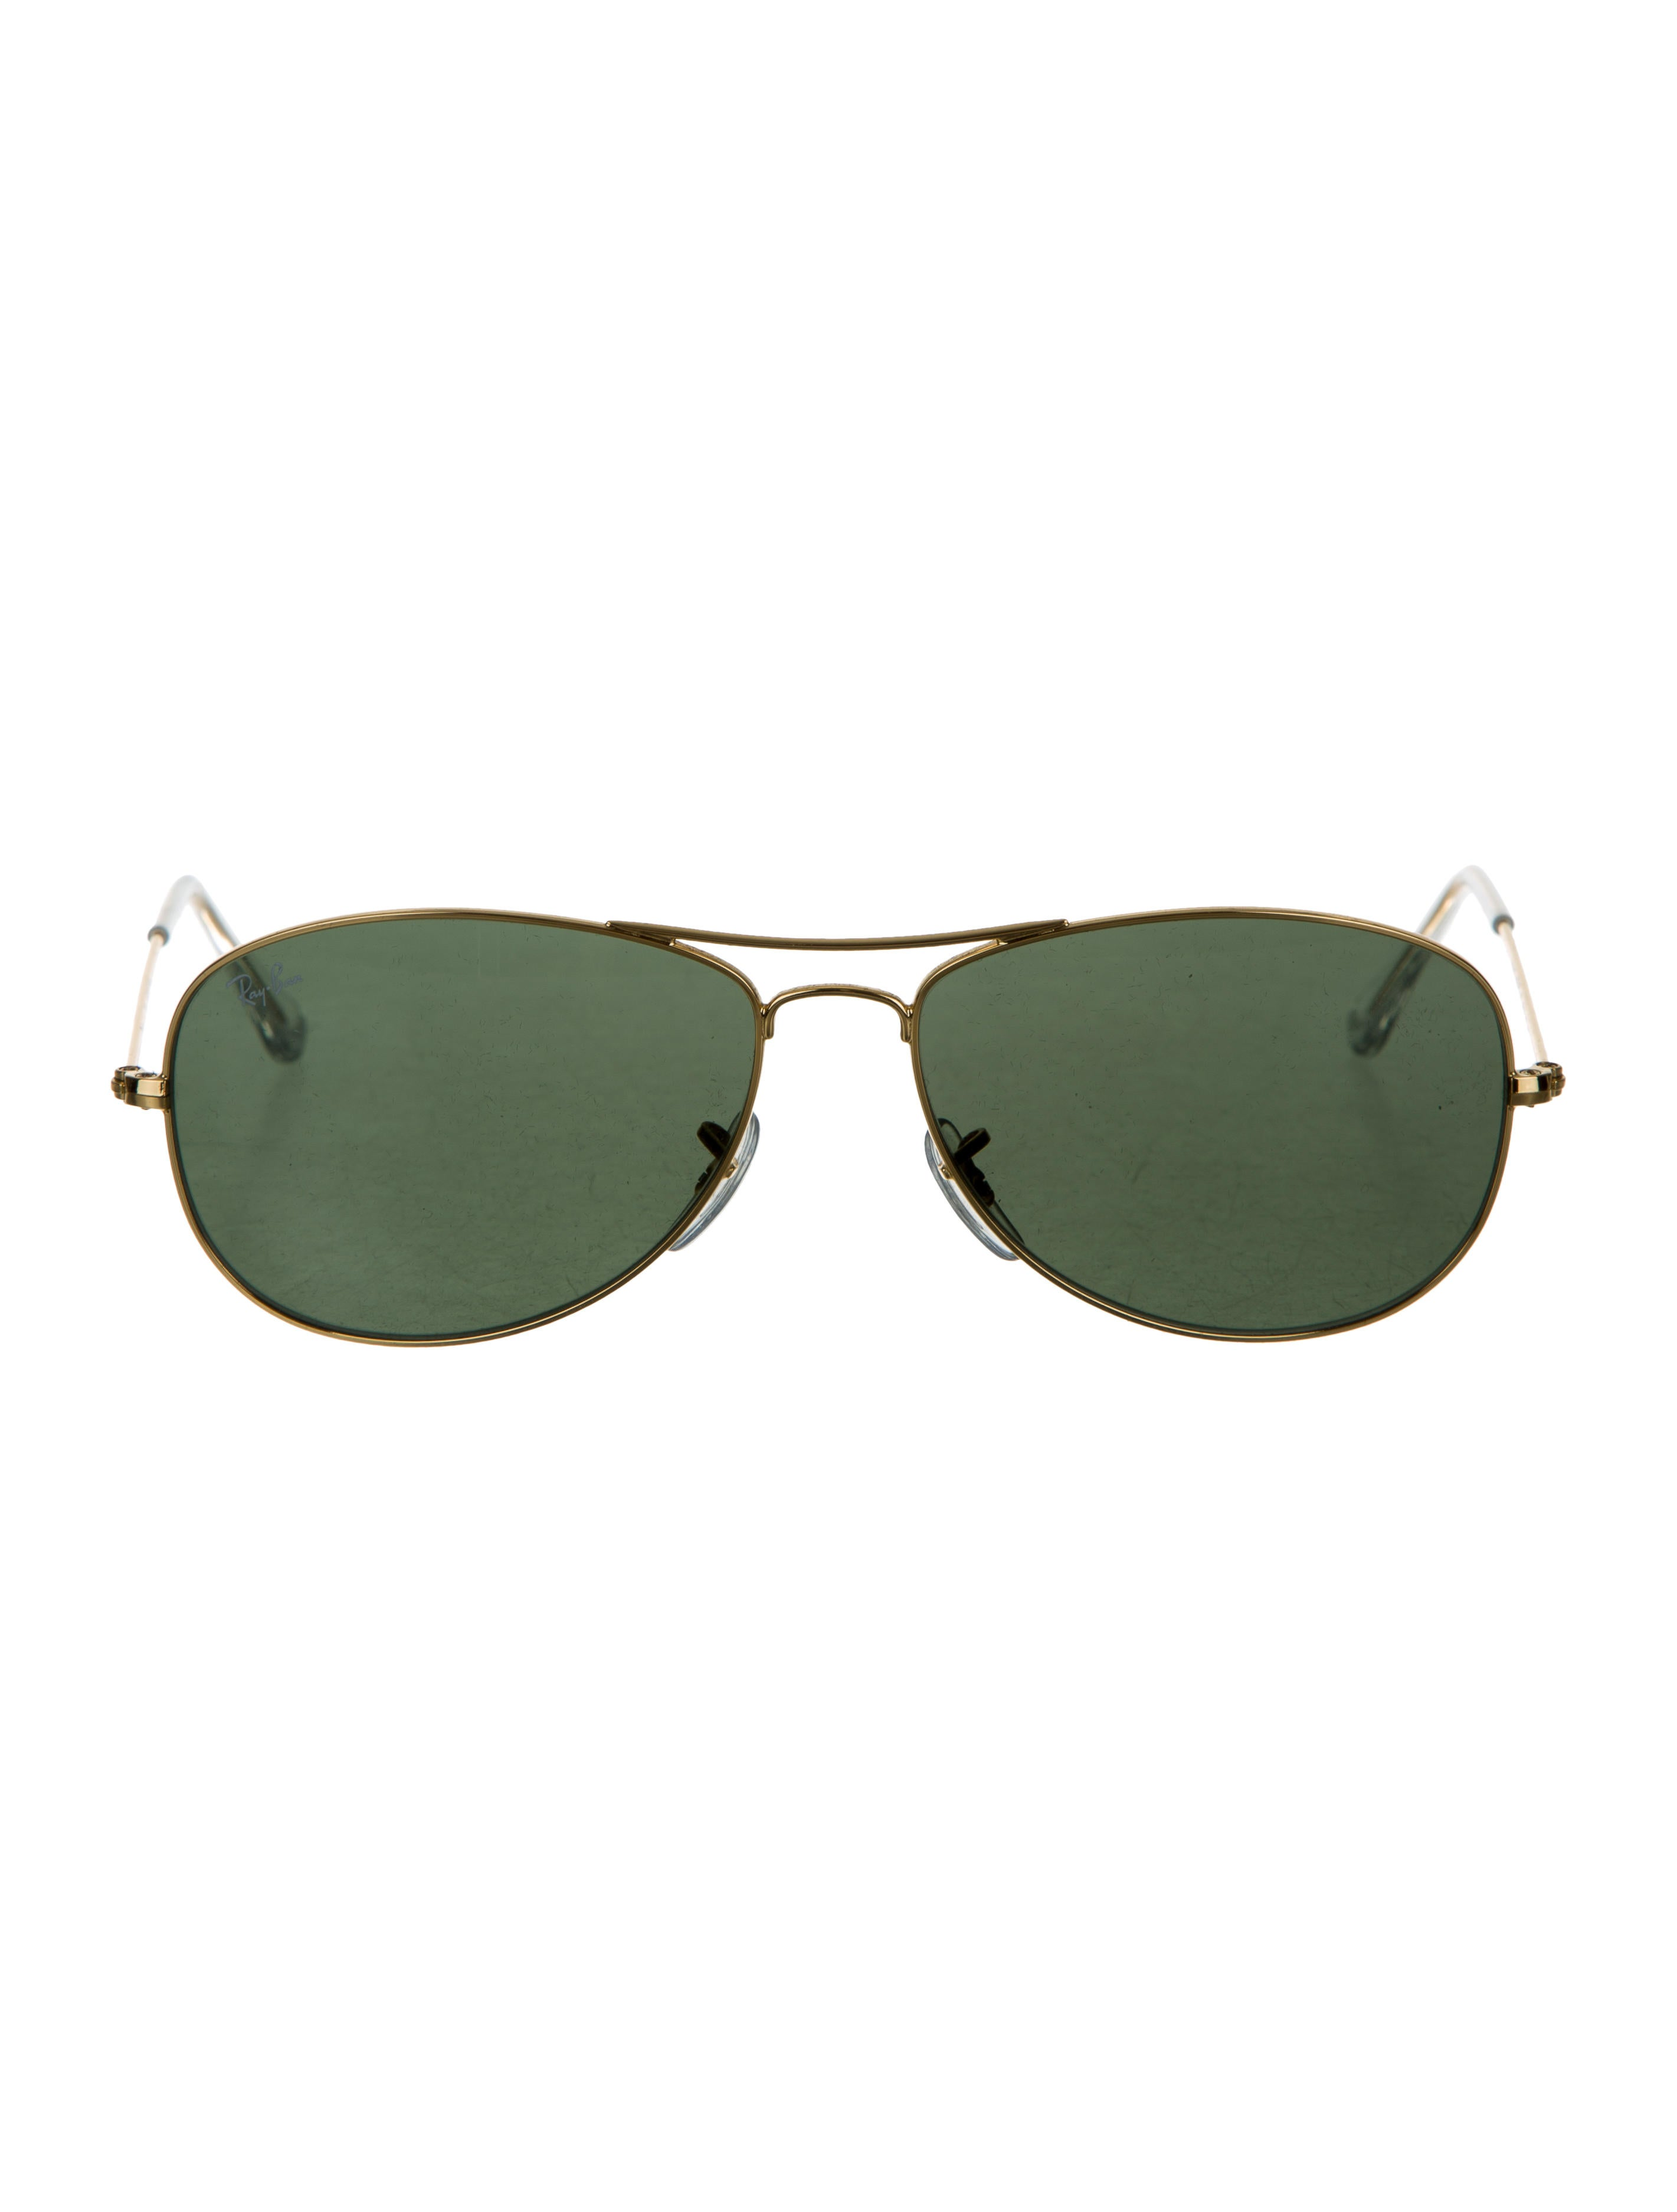 where are ray ban cockpit sunglasses made